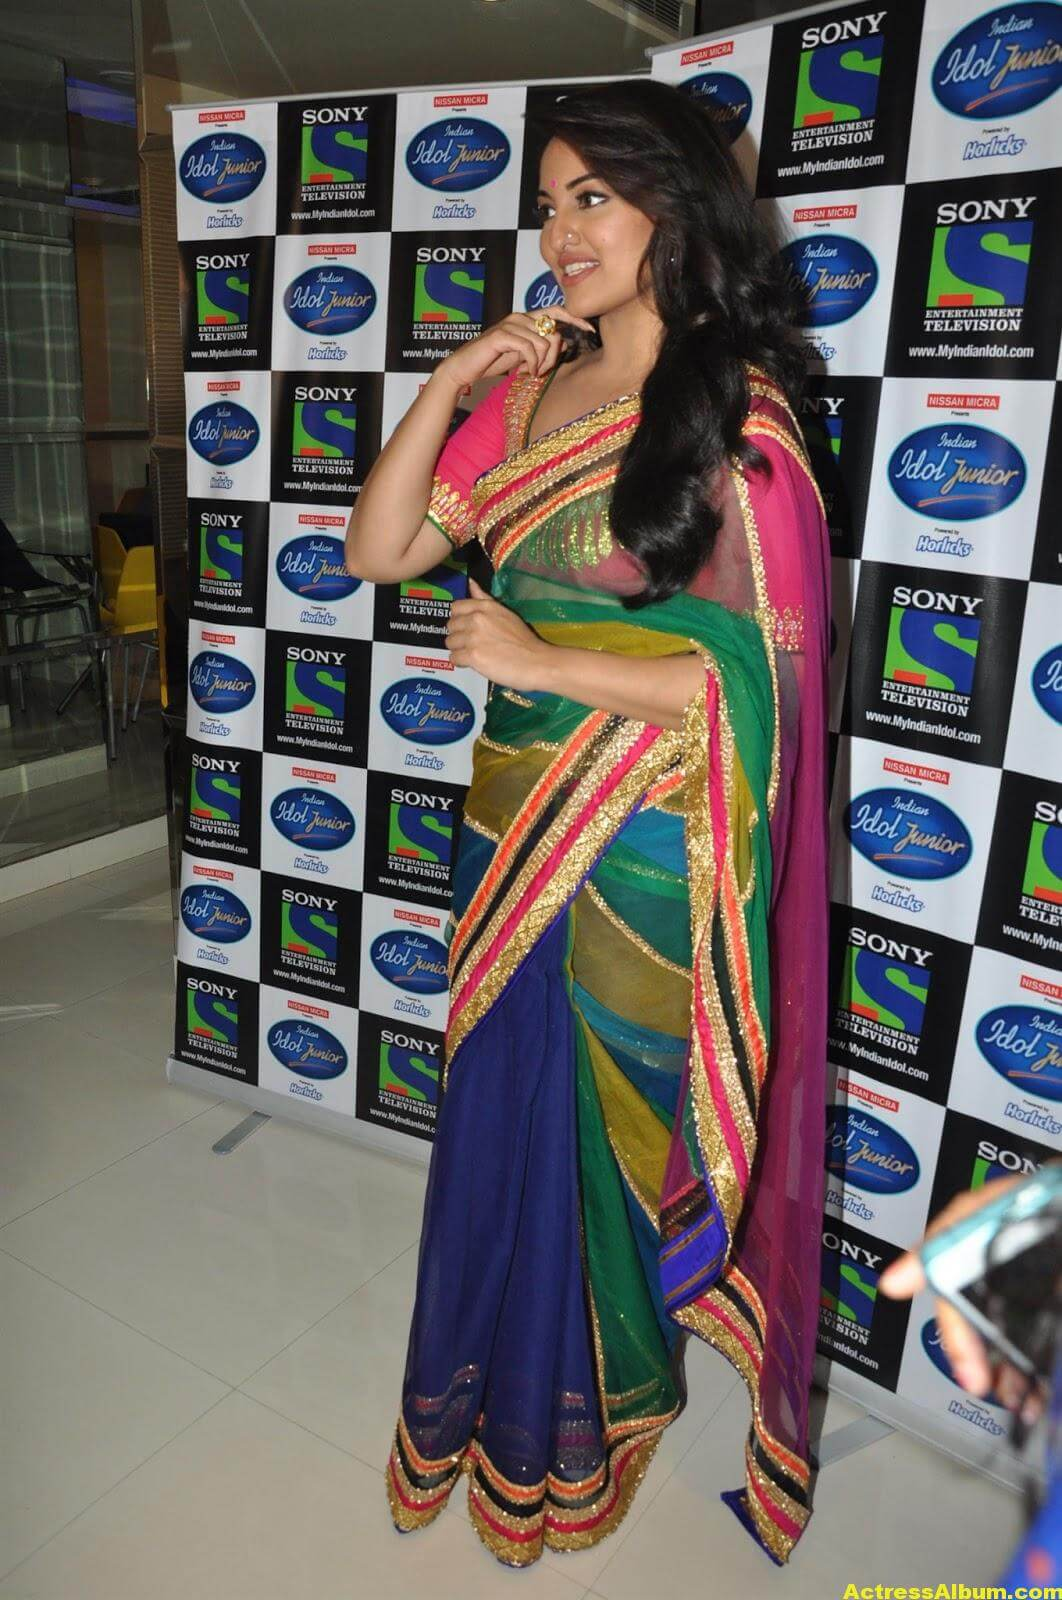 Sonakshi Sinha Looks Spicy In Colorful Saree Photoshoot 2